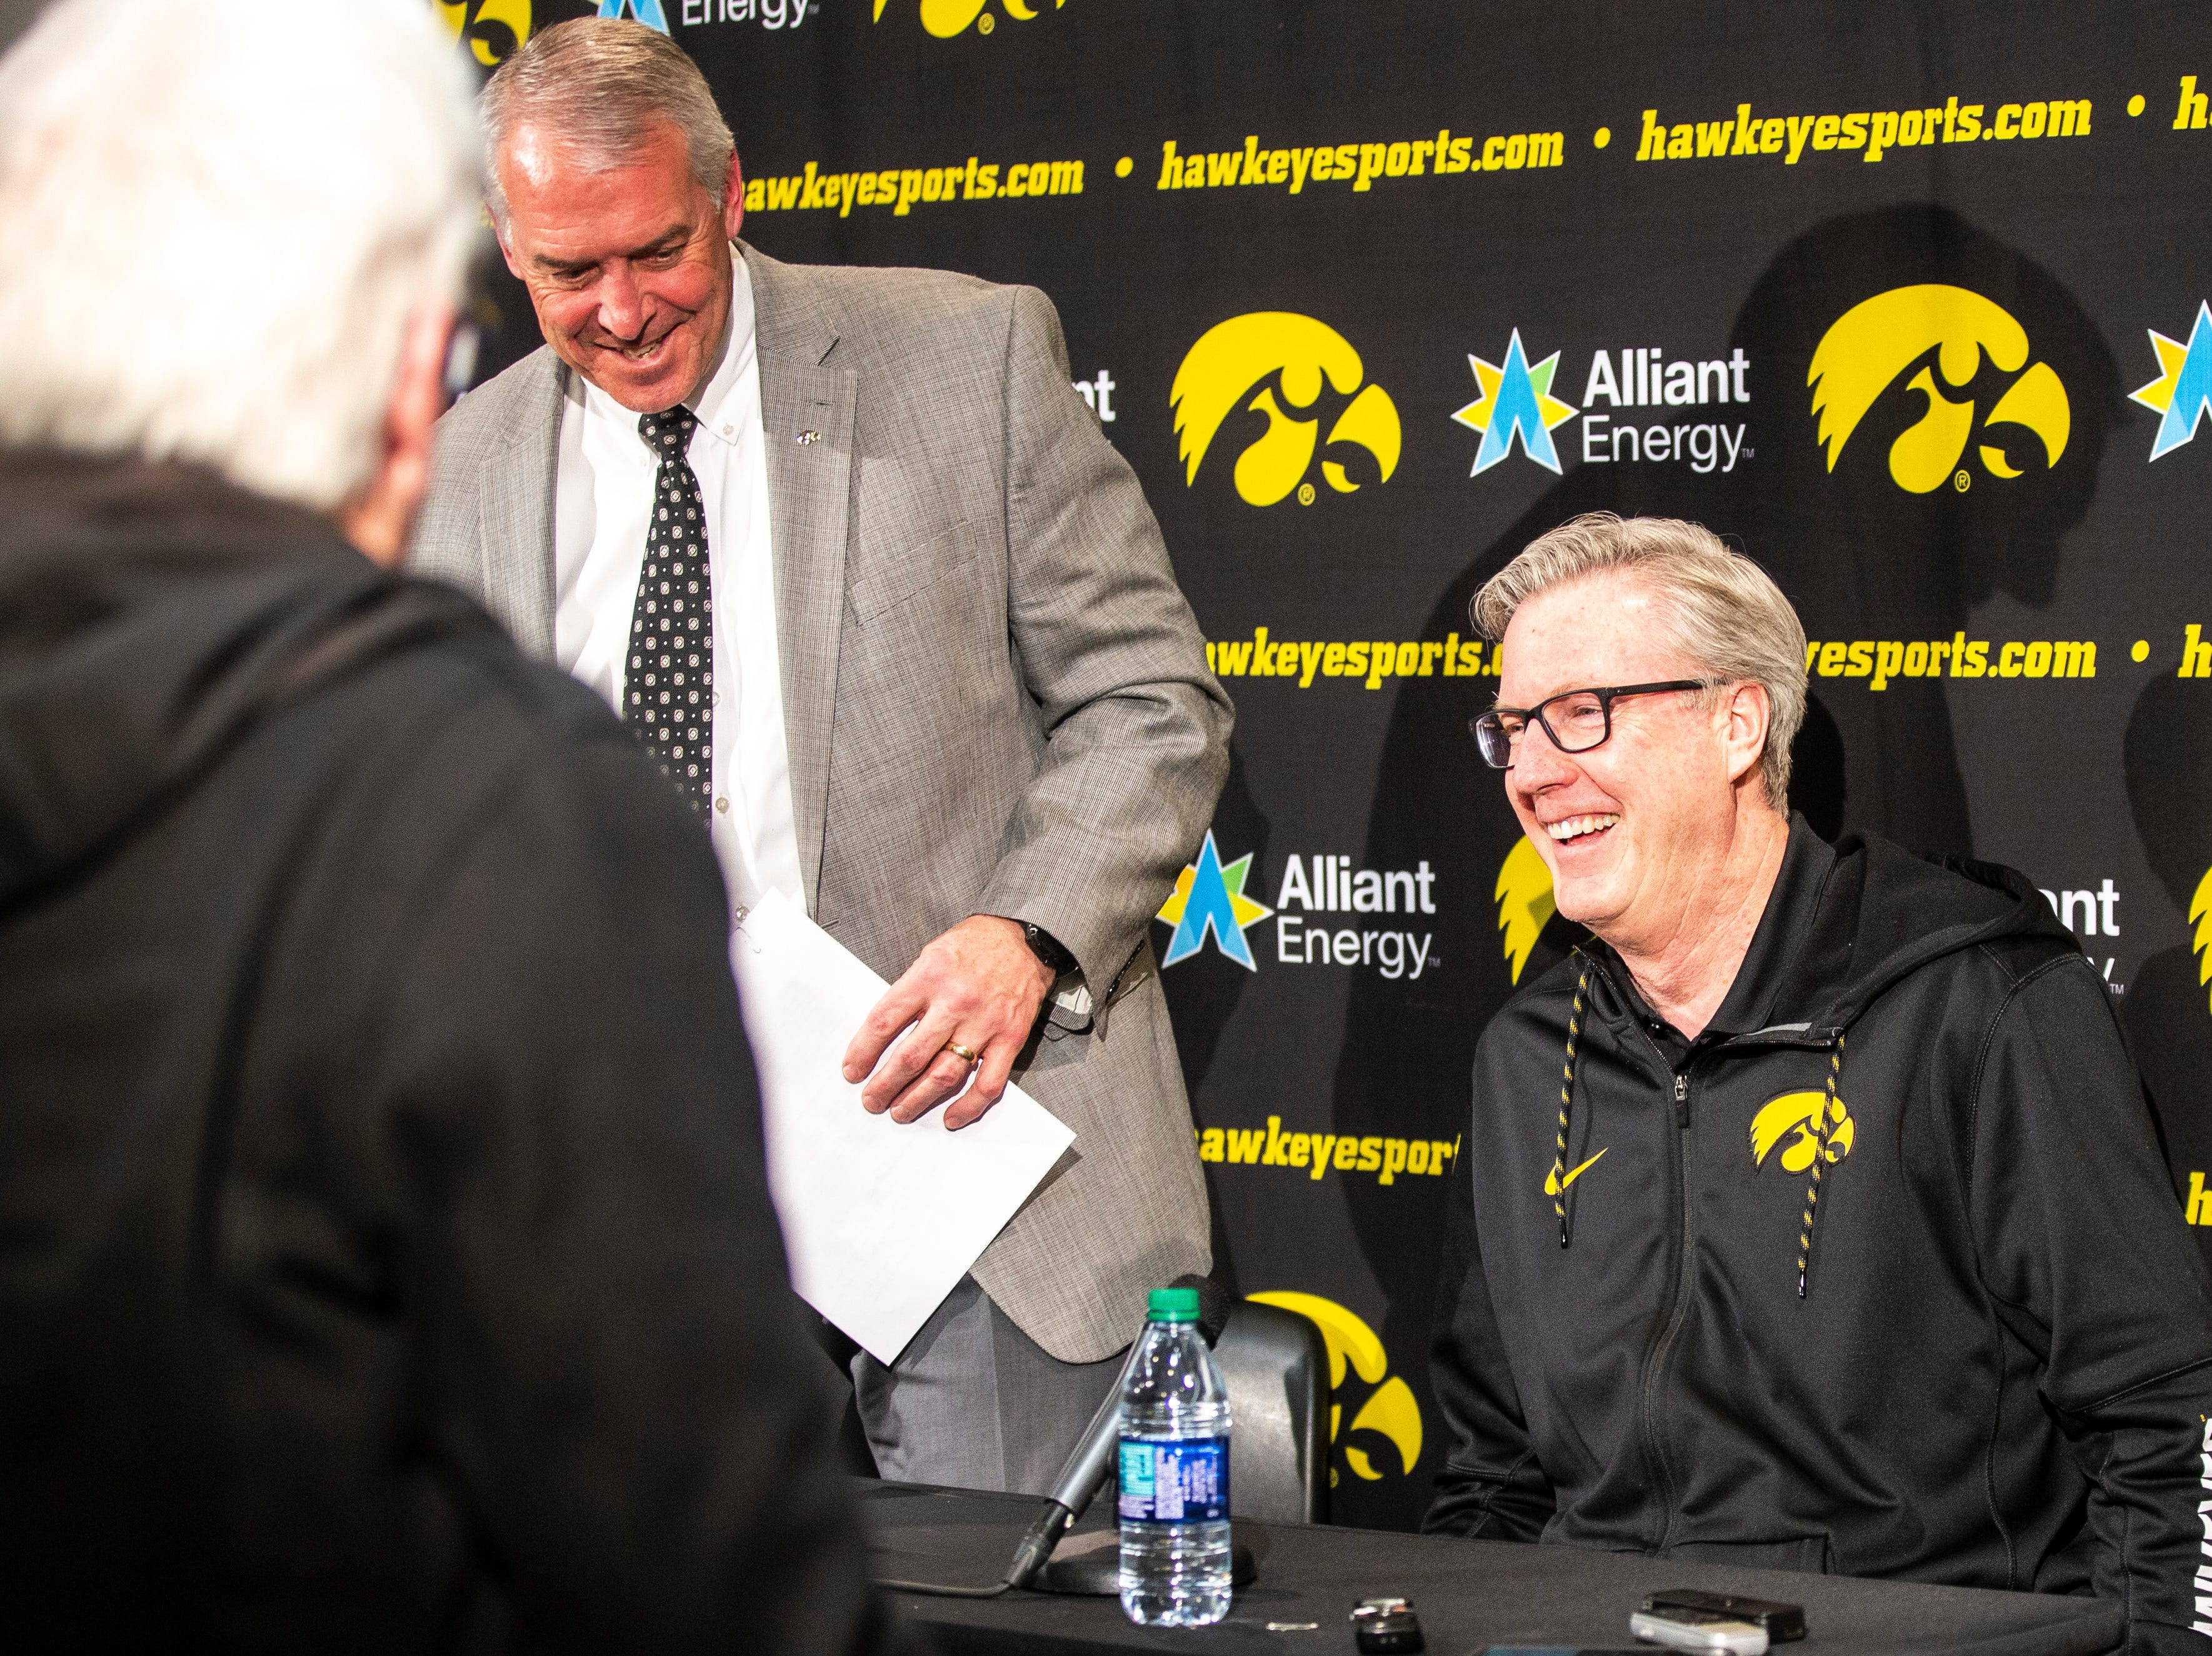 Iowa athletic director Gary Barta, left, and Fran McCaffery leave a press conference on Wednesday, Feb. 27, 2019, at Carver-Hawkeye Arena in Iowa City, Iowa.